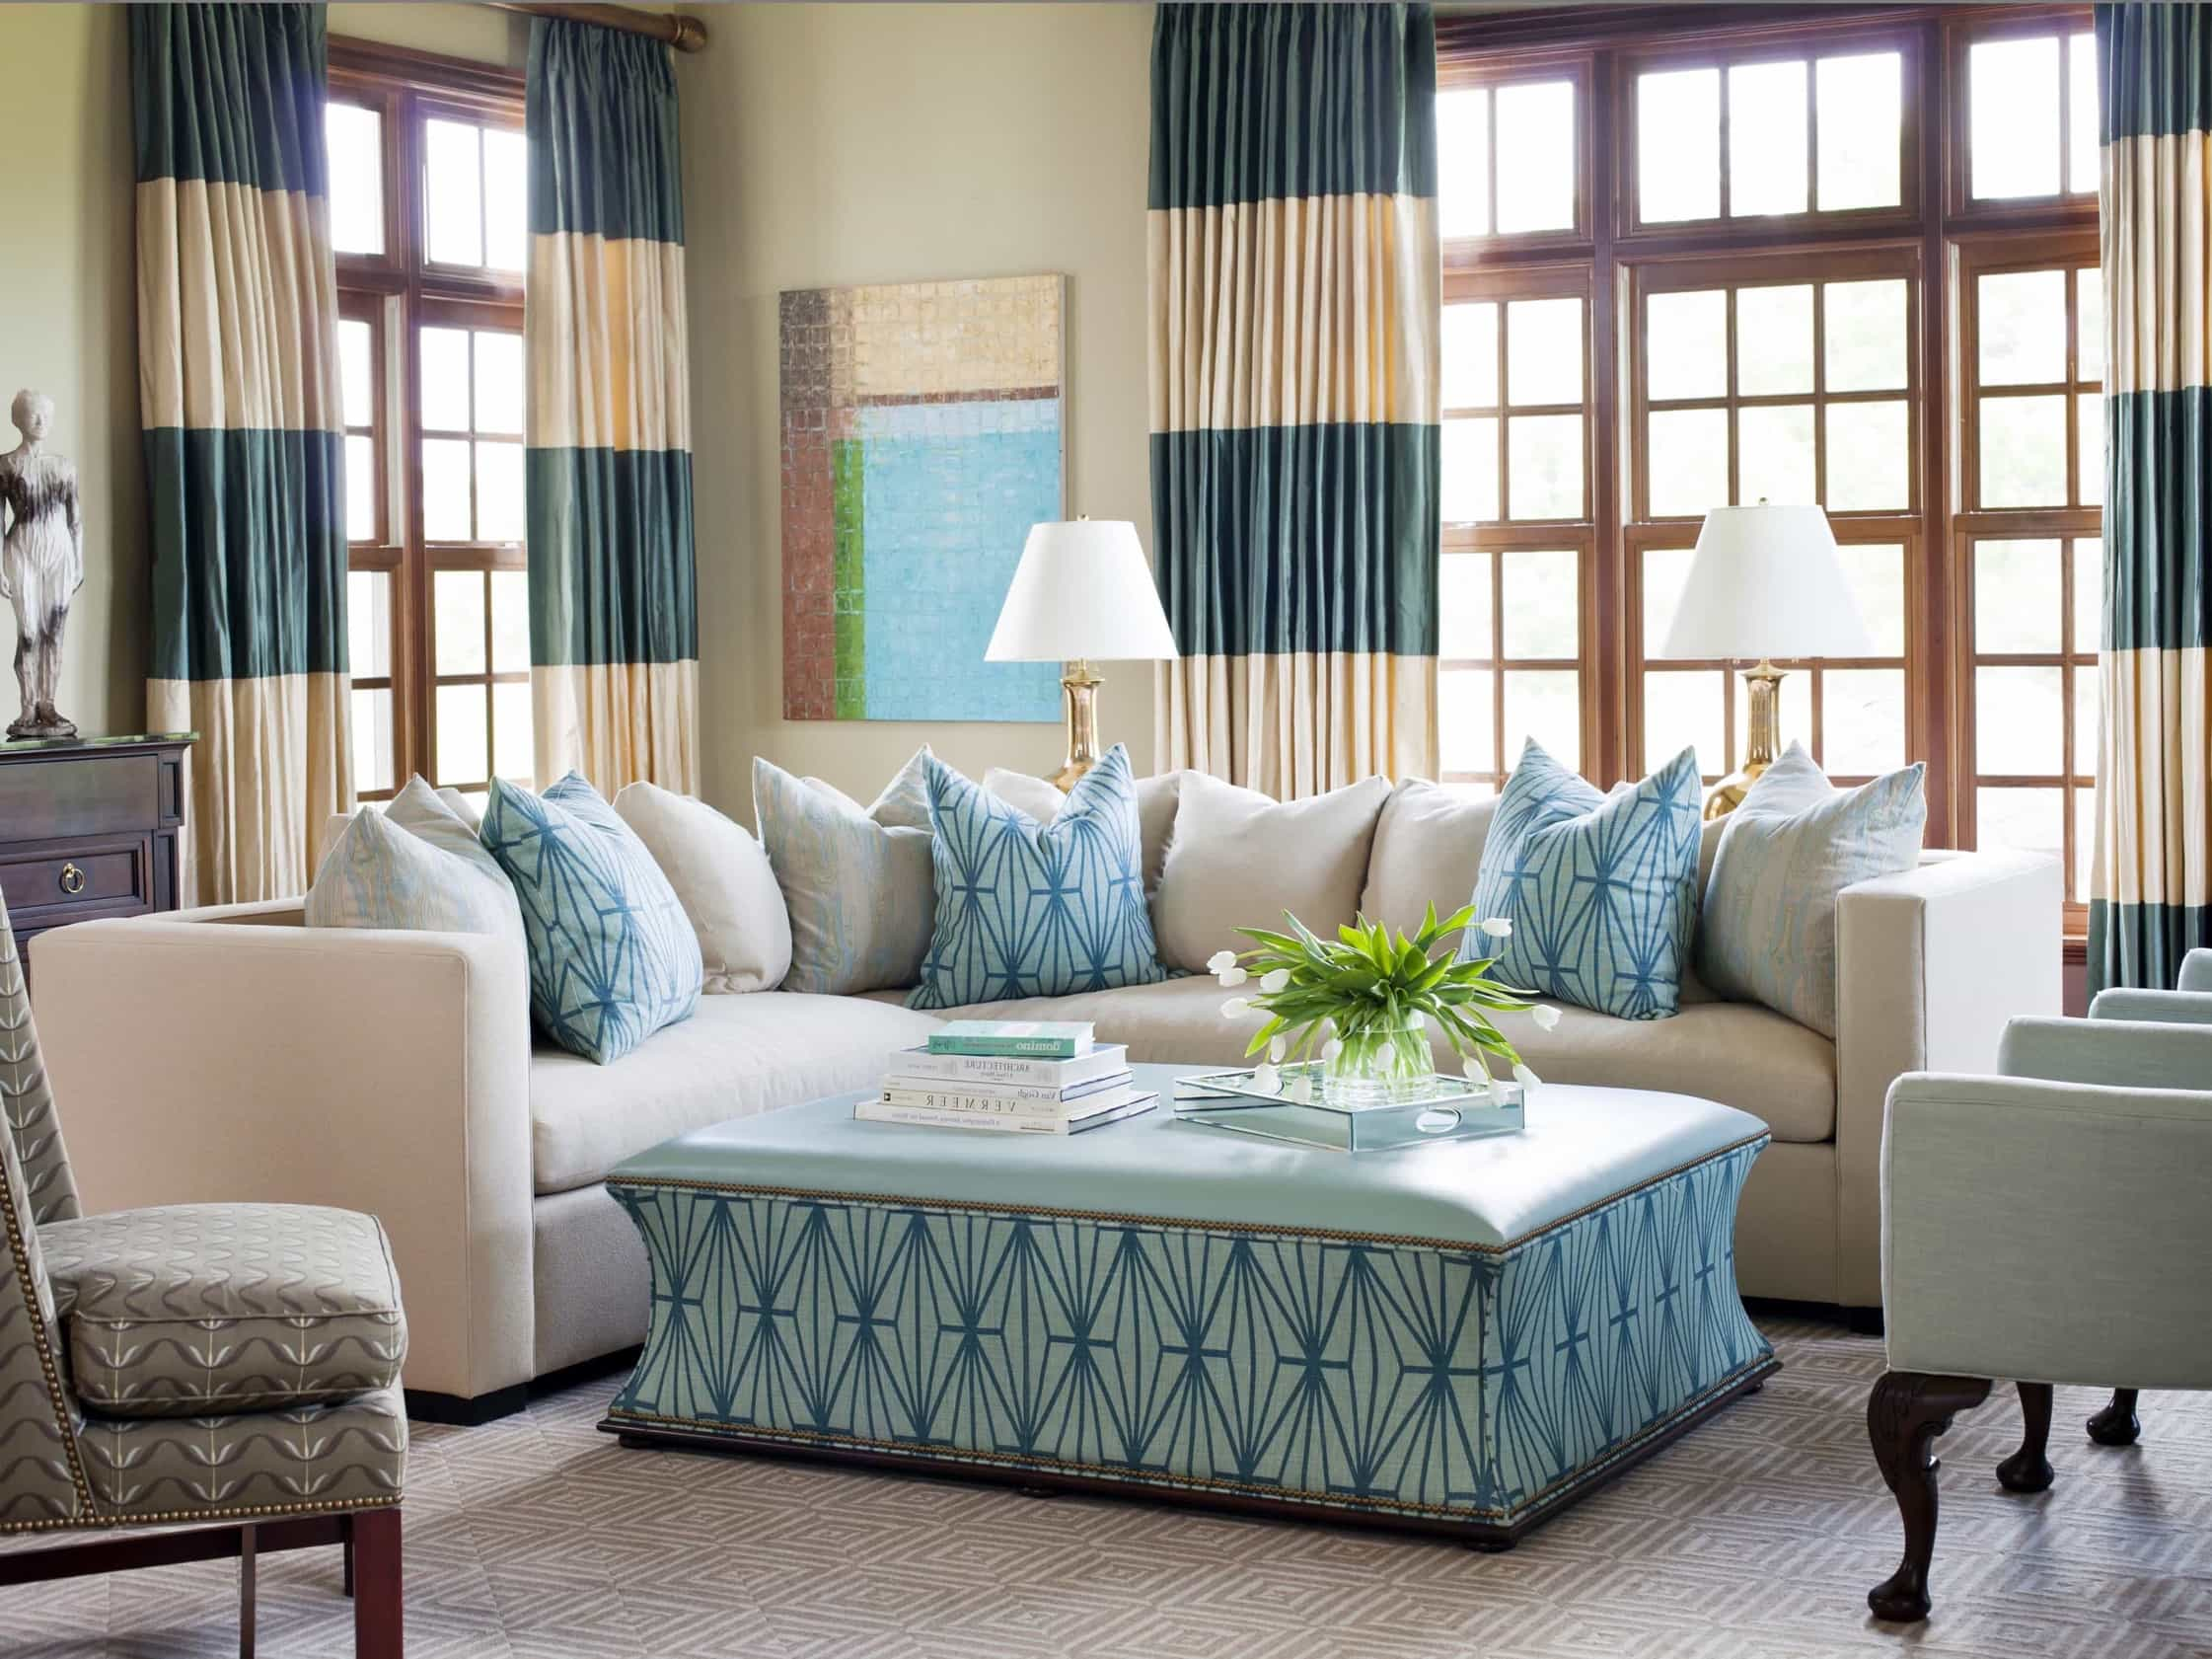 Featured Image of Elegant White And Turquoise Coastal Living Room